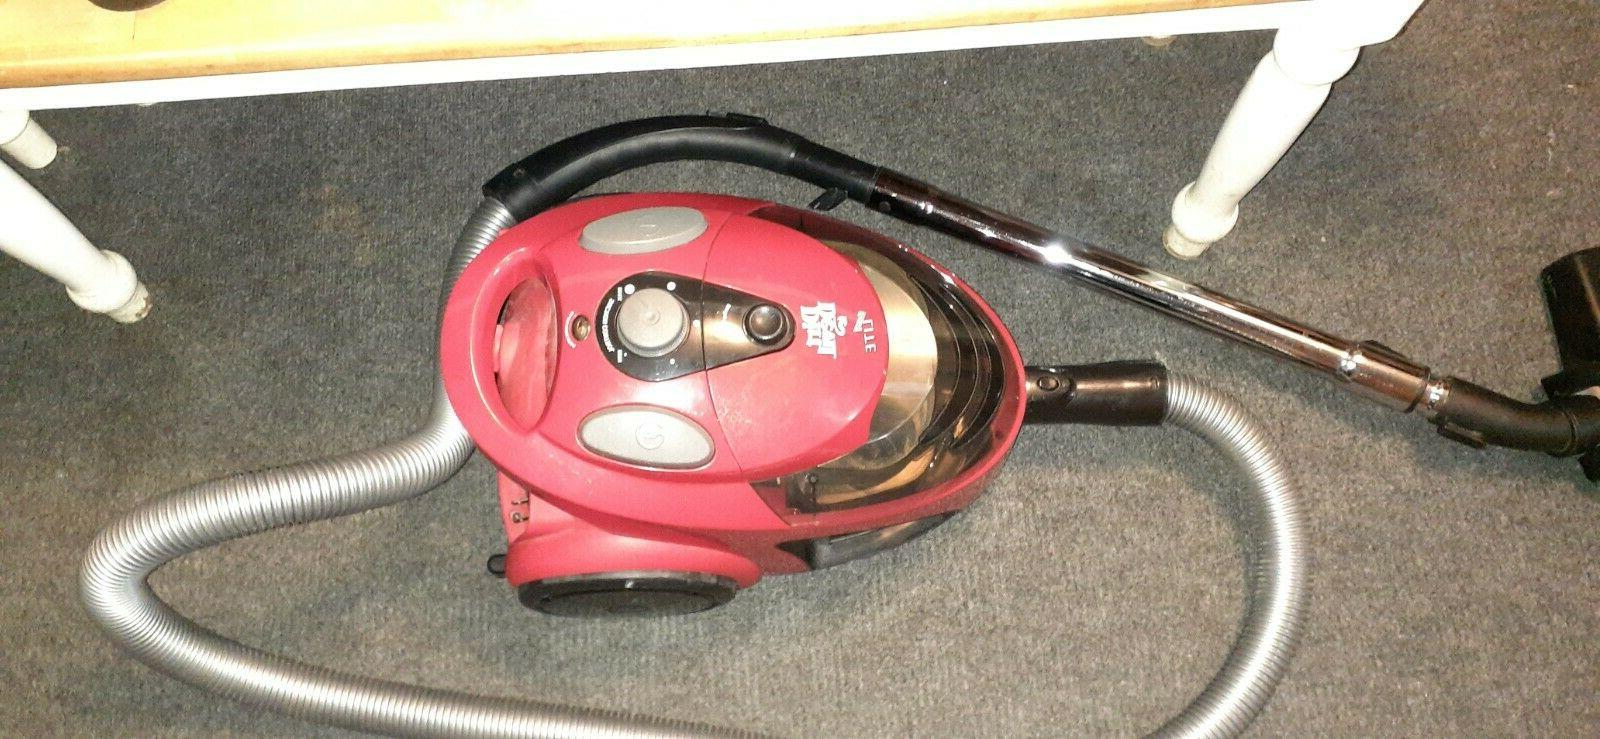 easy lite canister vacuum sd40010